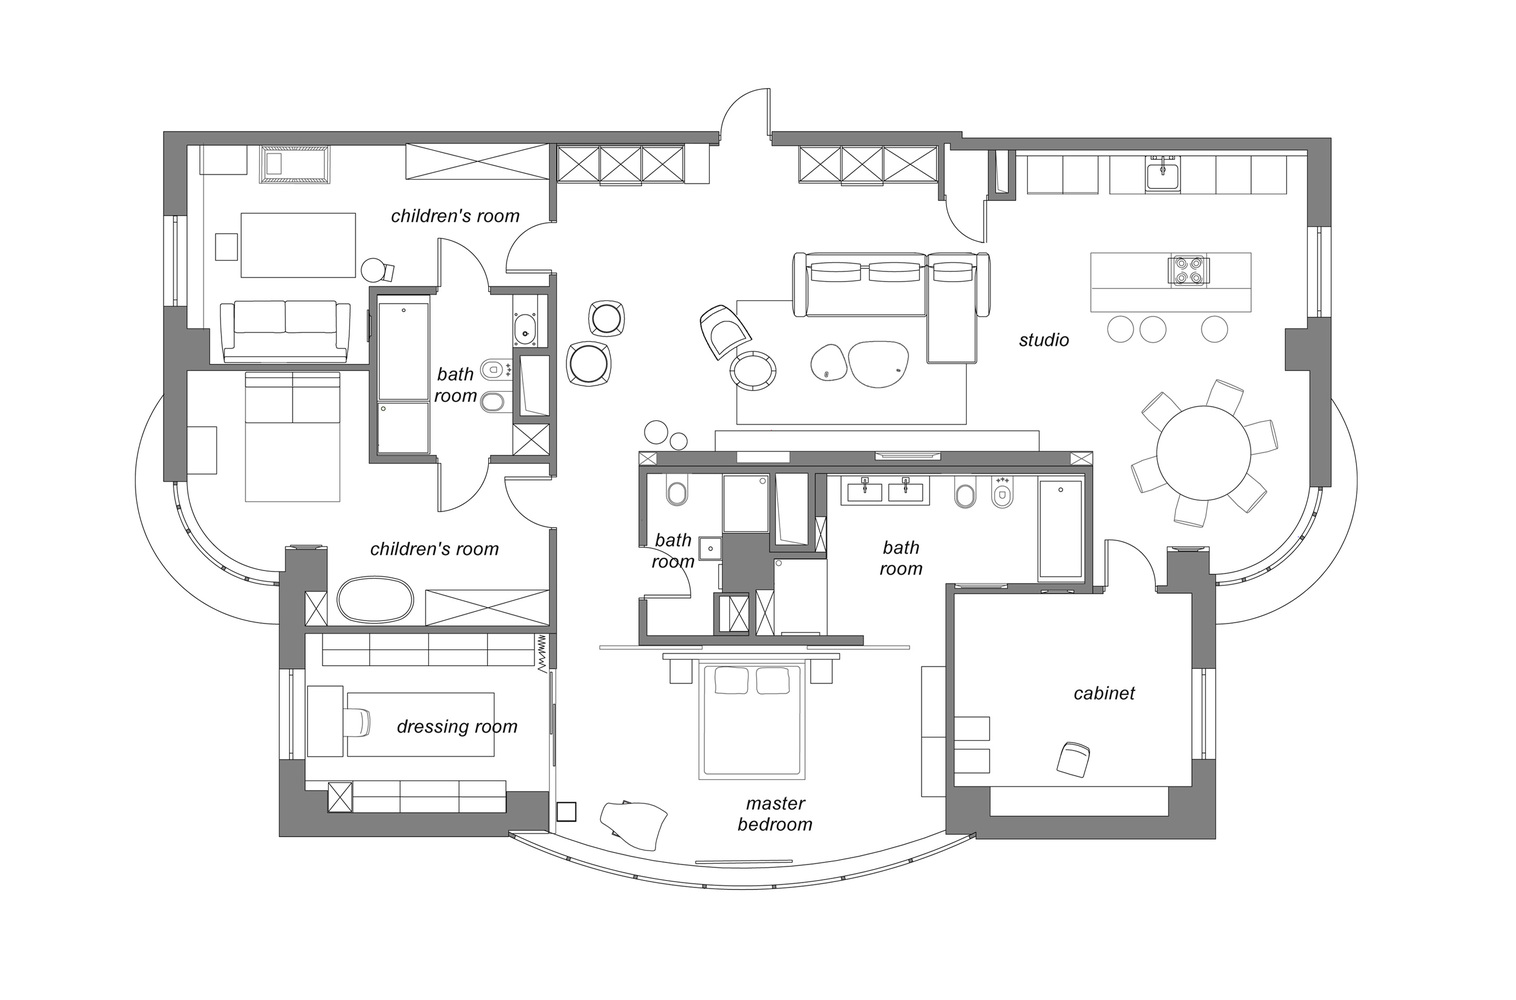 The floor plan reveals a very good and practical distribution of the spaces based on function